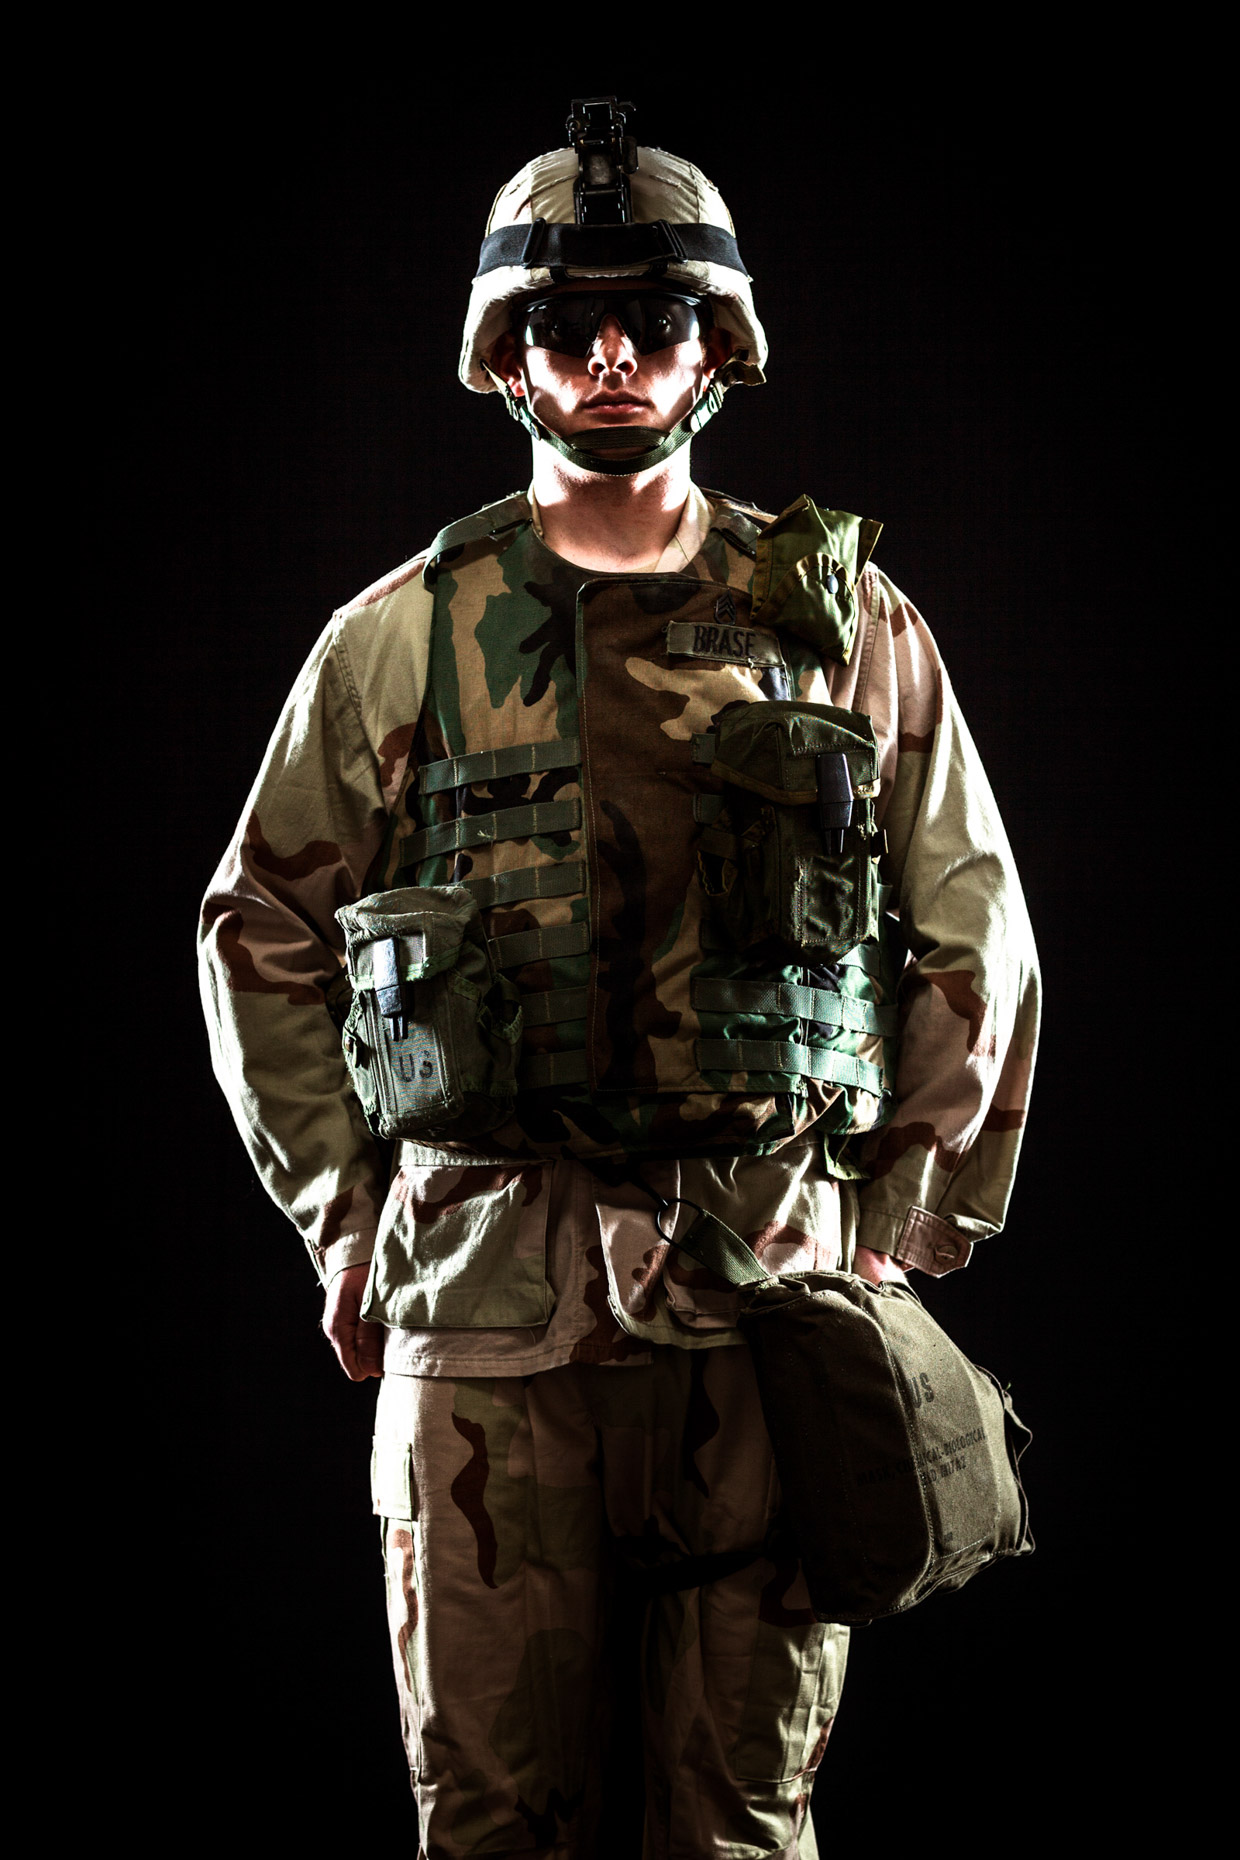 military soldier portrait